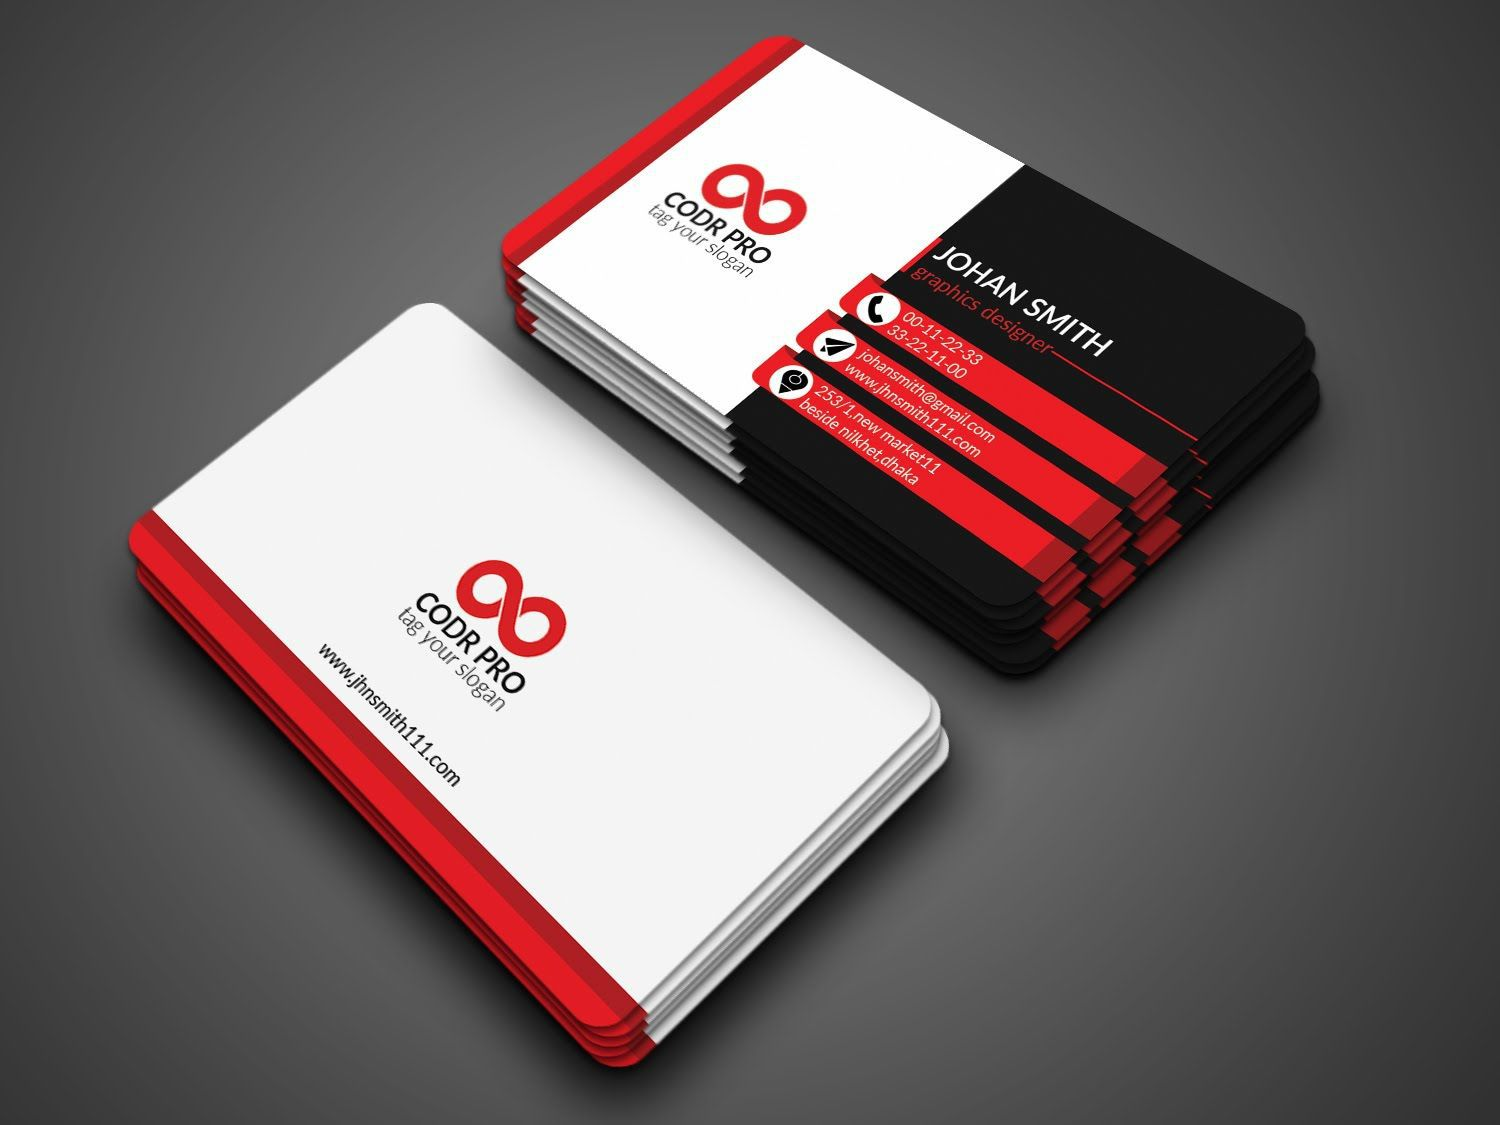 003 Fantastic Psd Busines Card Template Photo  With Bleed And Crop Mark Vistaprint FreeFull